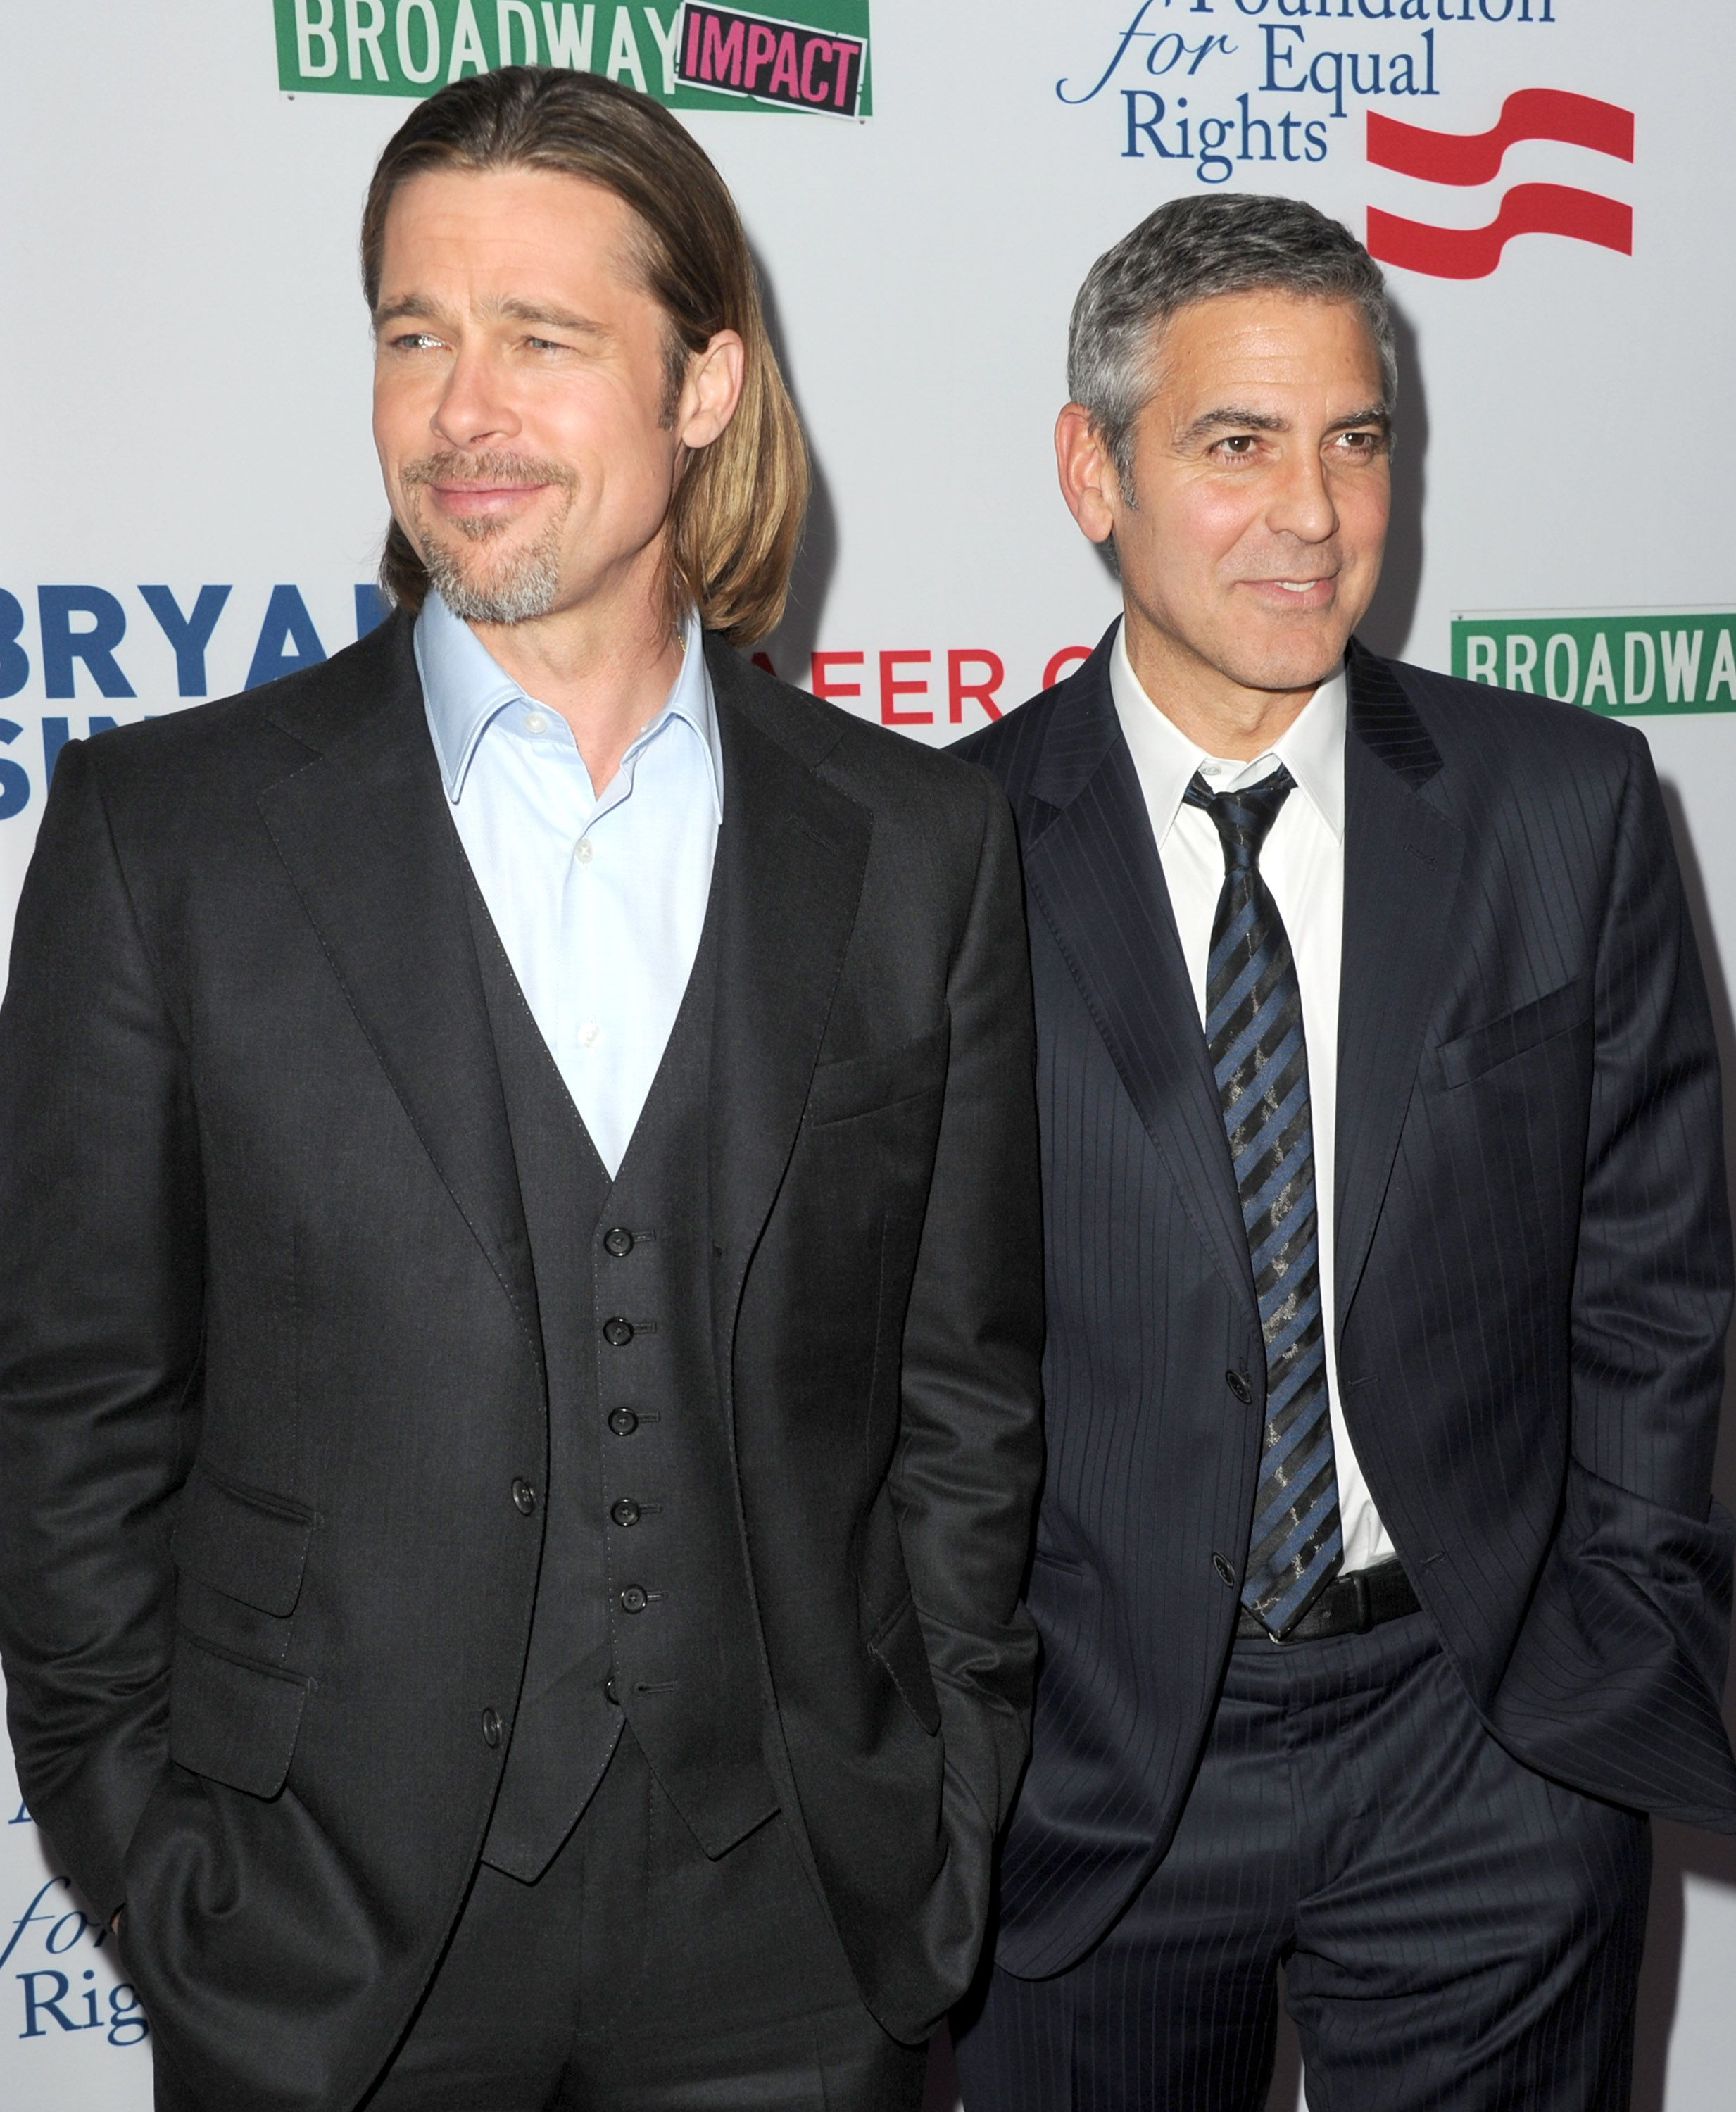 Brad Pitt & George Clooney We love a bromance! These A-listers have starred in several movies together, including the Ocean 's movies and the Coen Brothers' comedy Burn After Reading.